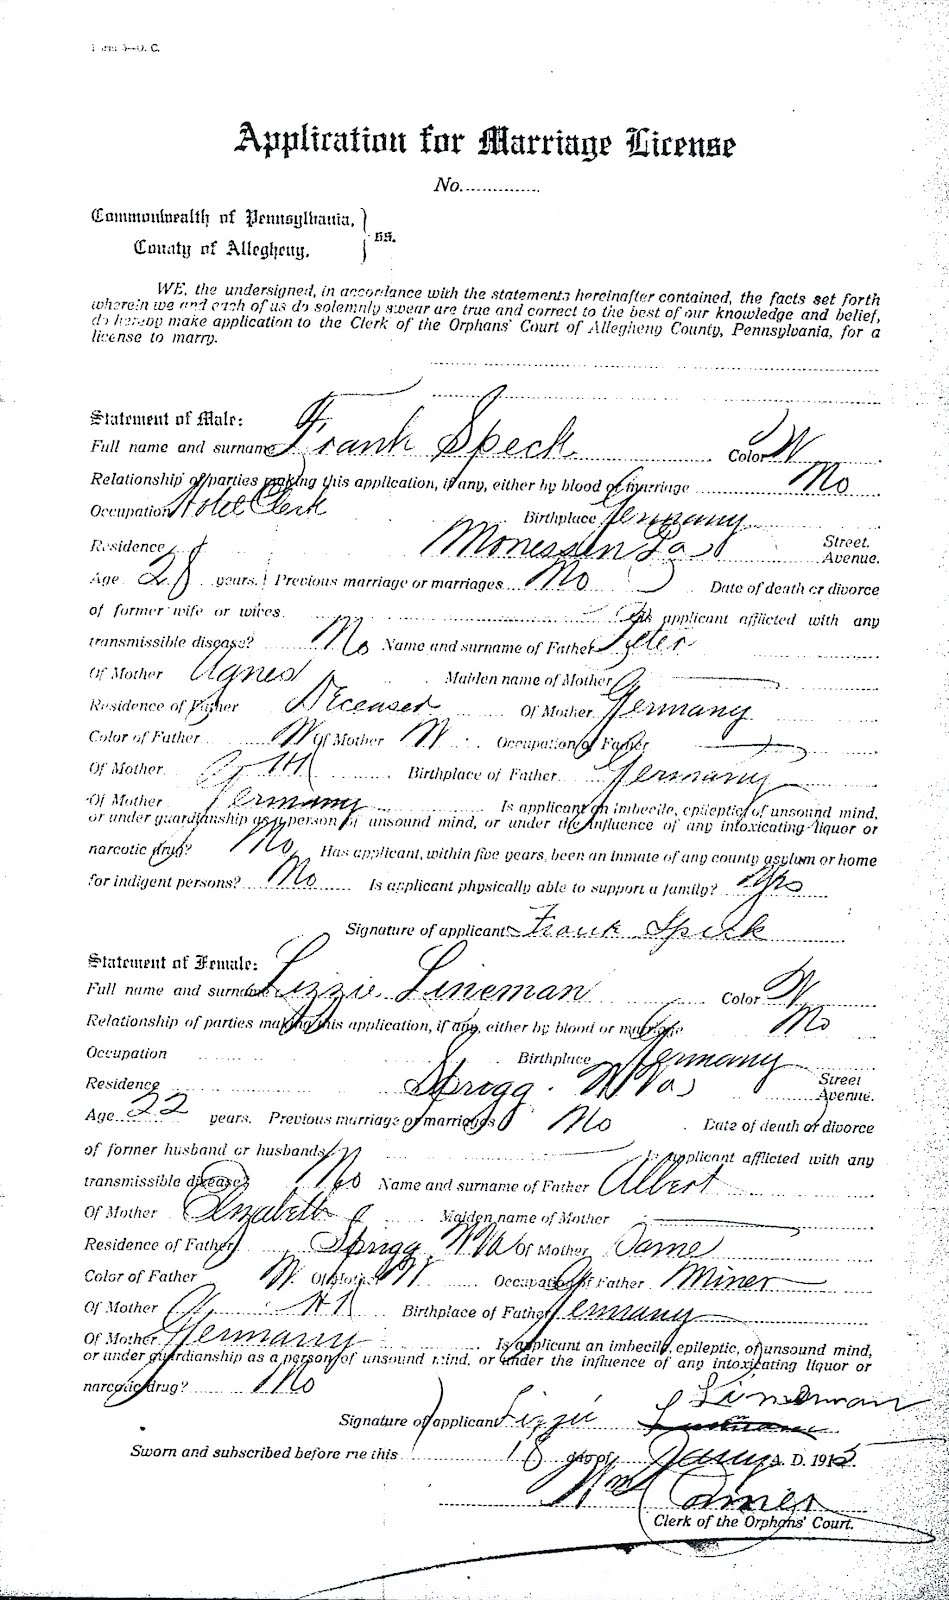 1915 Speck-Linneman Marriage